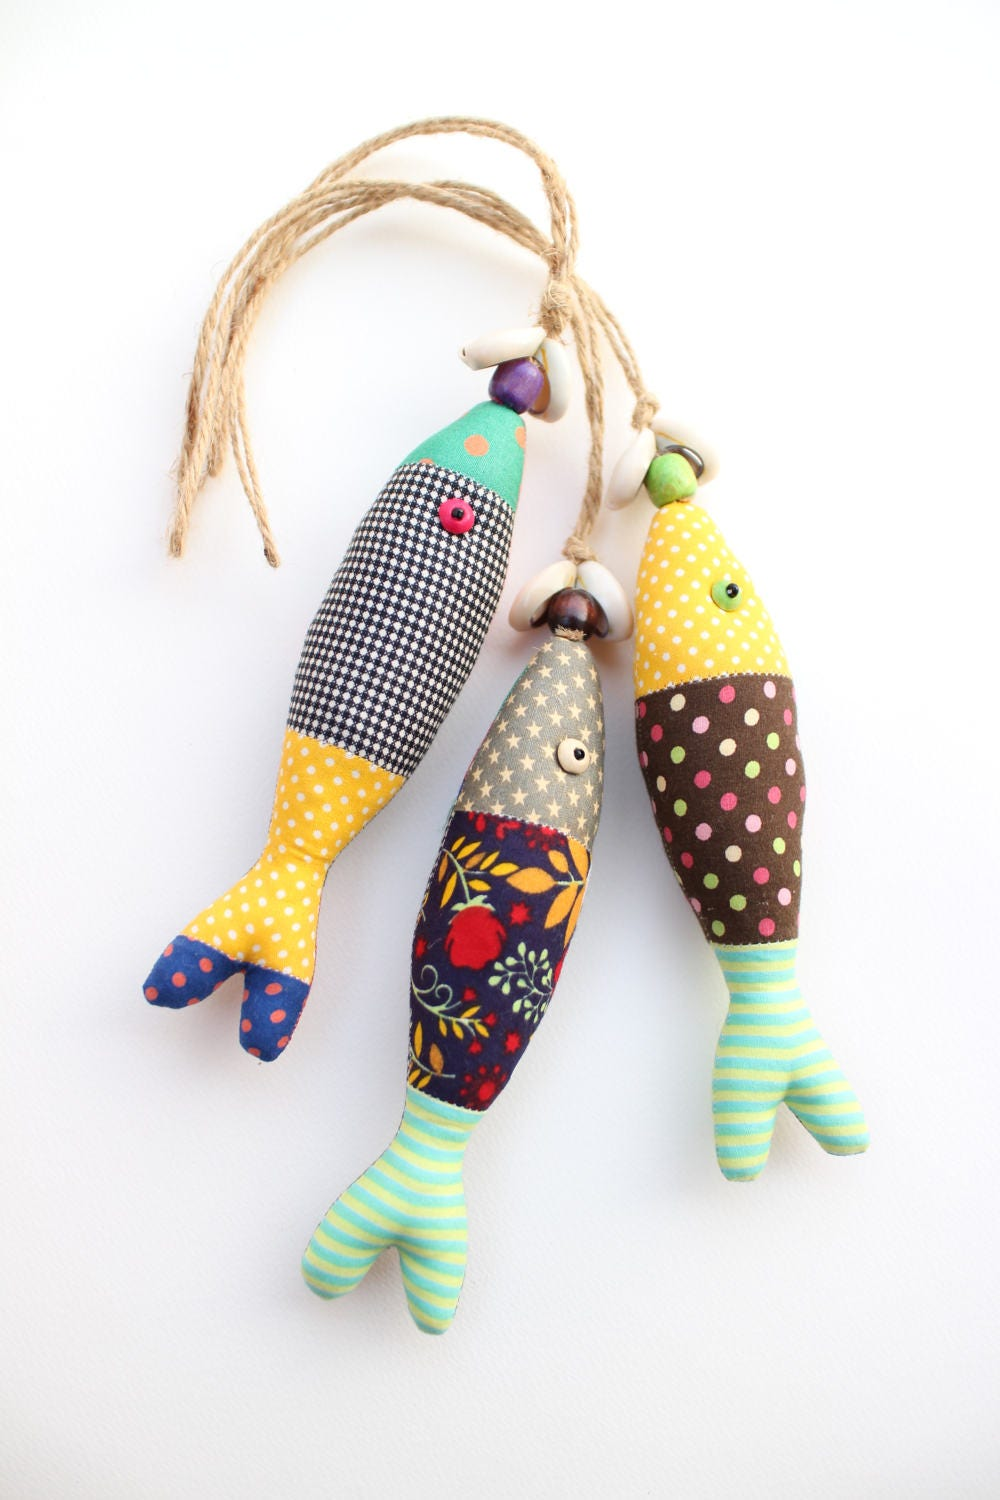 patchwork fish mobile baby patchwork fish mobile baby fish  - gallery photo gallery photo gallery photo